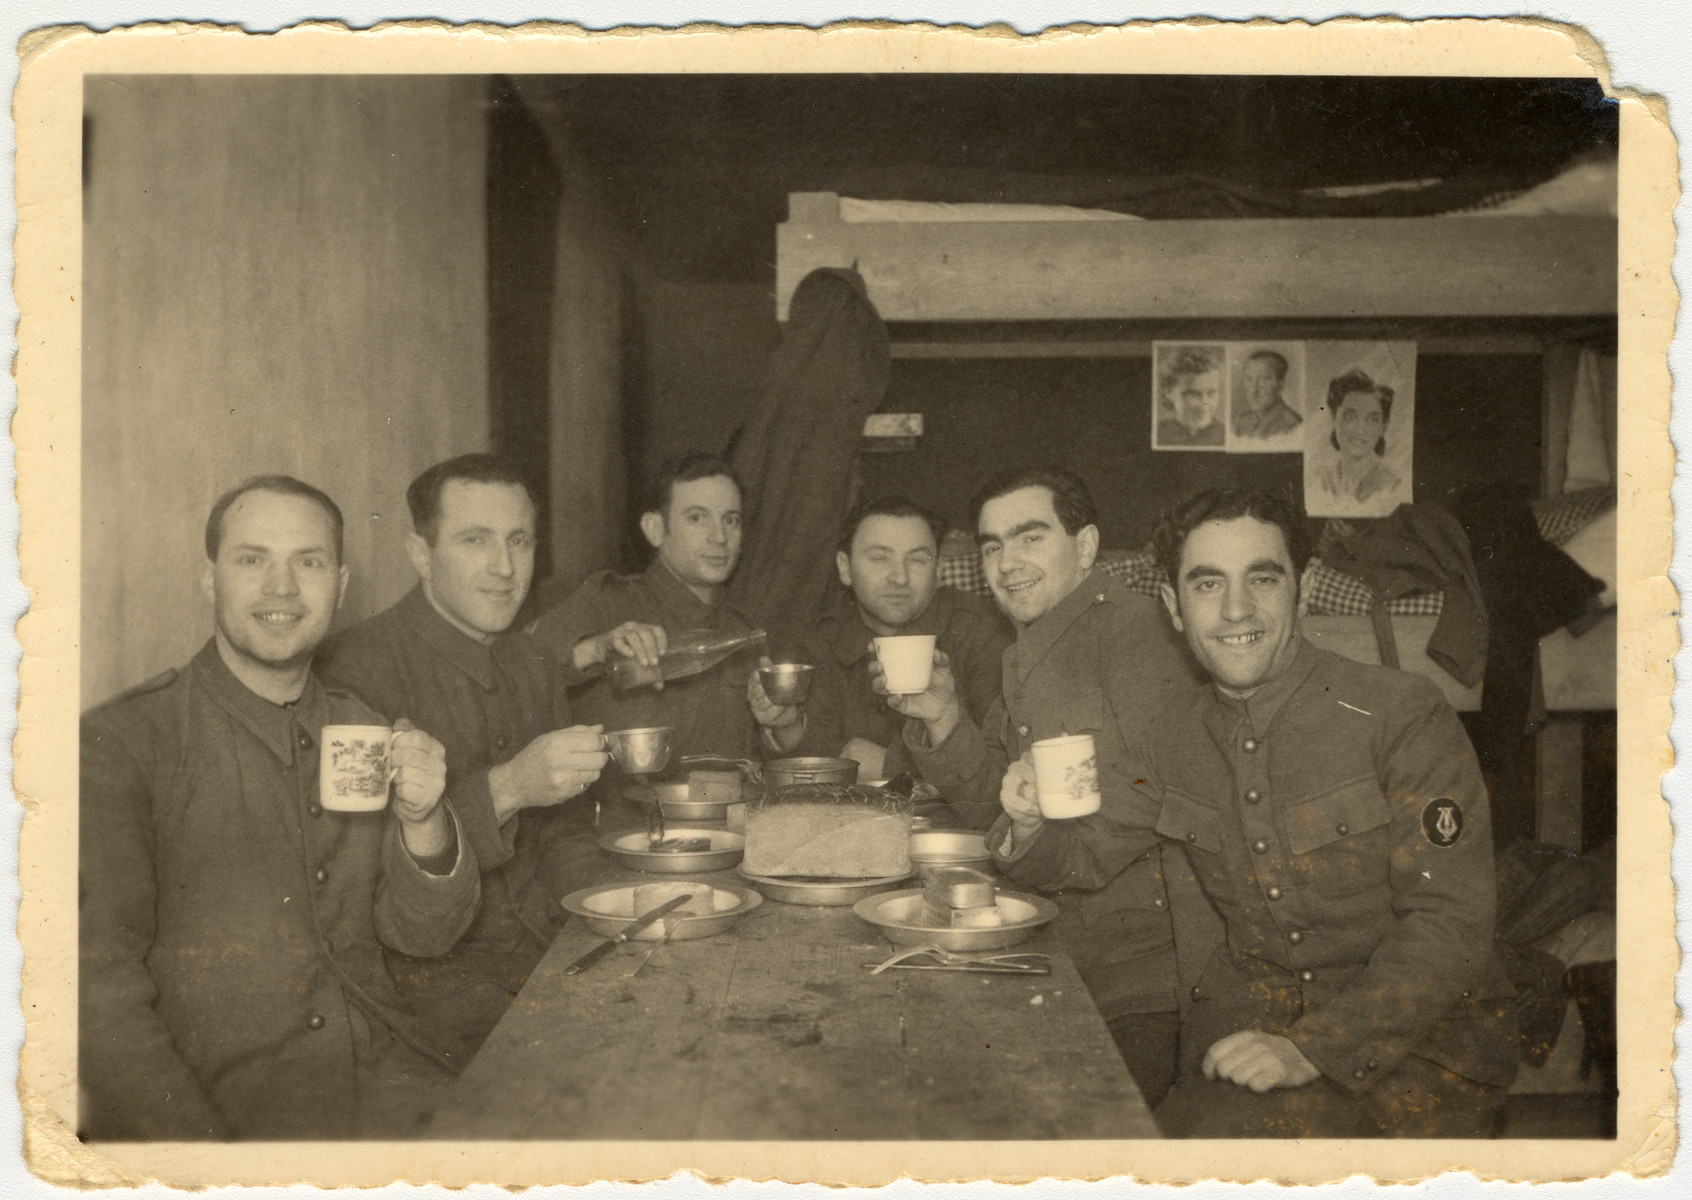 Jewish POWs eat potato pancakes in celebration of Hannuka inside their barracks in POW camp Stalag VIII.  Max Beker is pictured in the right, front.  Also pictured are Sokoloff, Philip, Kremin, Kopelansky and Katz.